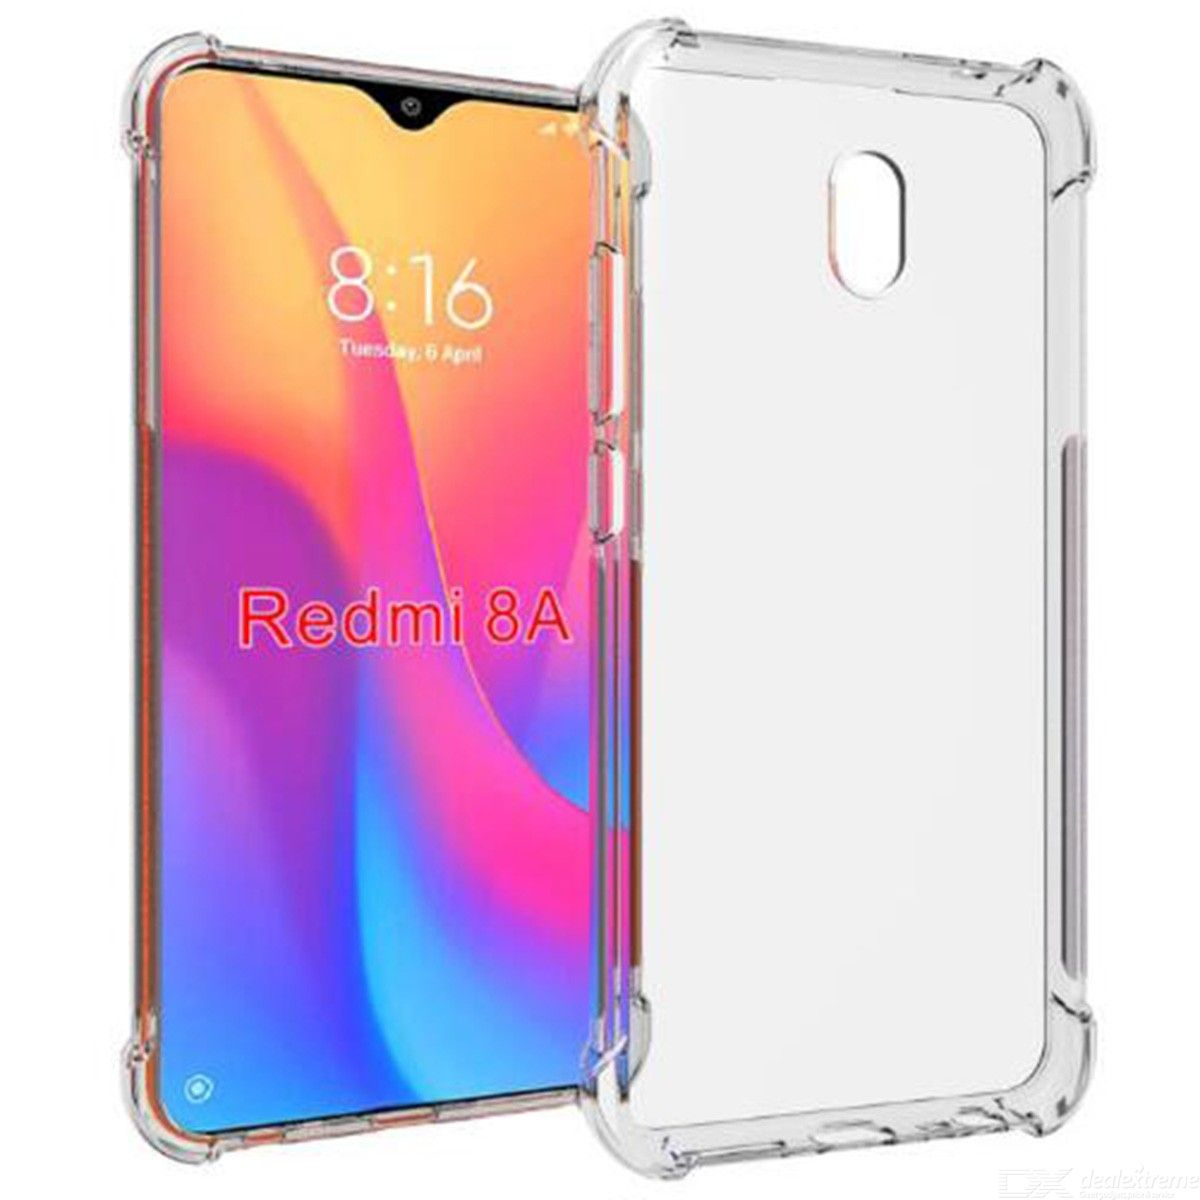 ASLING Four-corner Airbag Phone Case Protective Shell for Xiaomi Redmi 8A